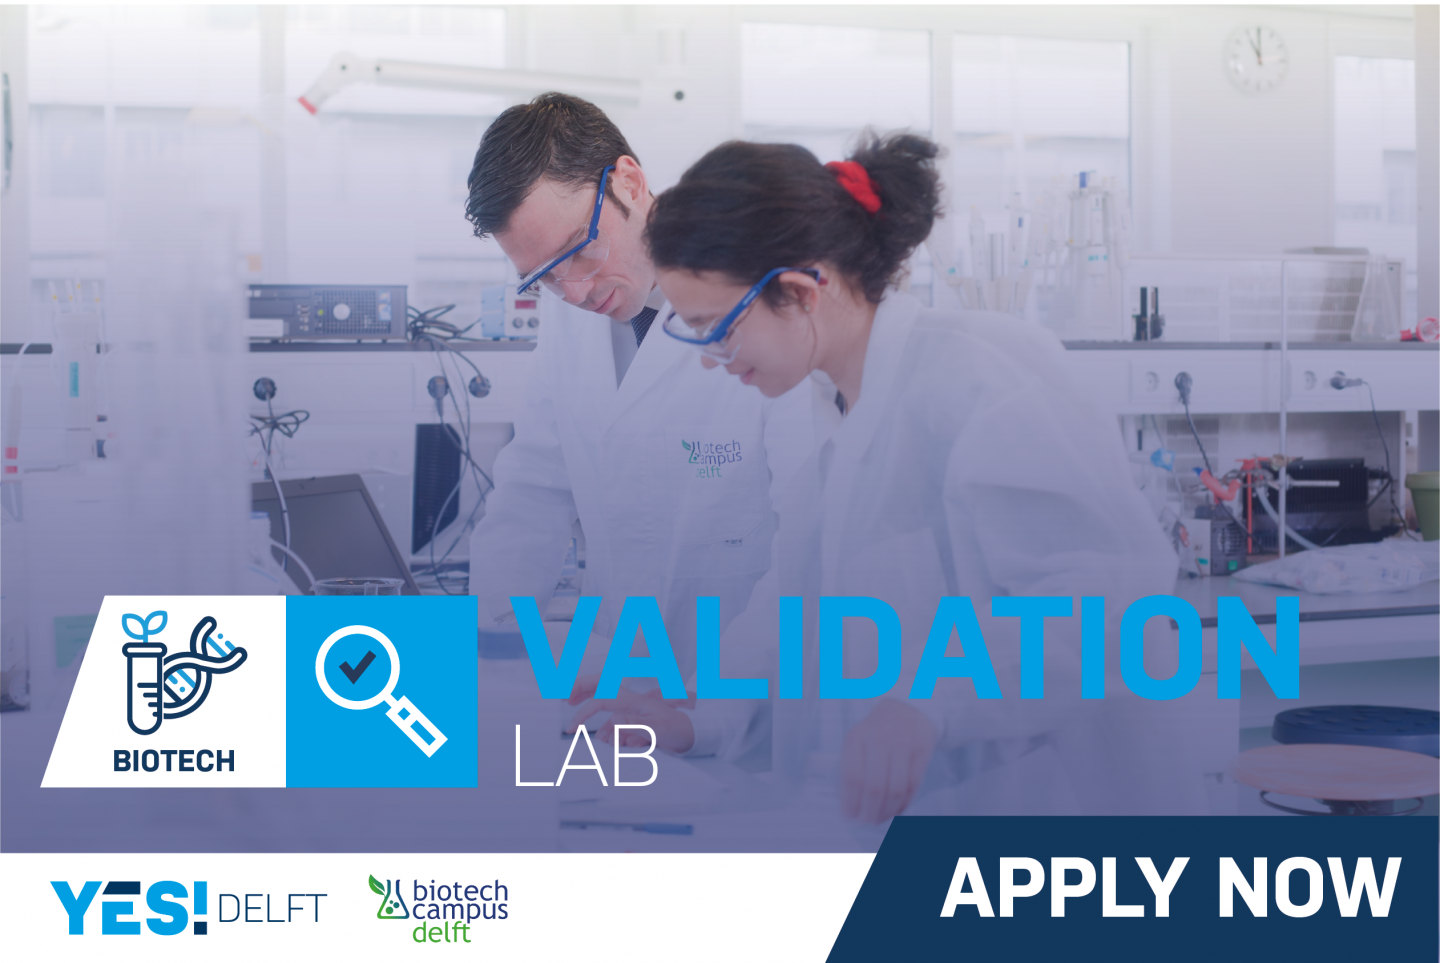 Biotech Validation Lab